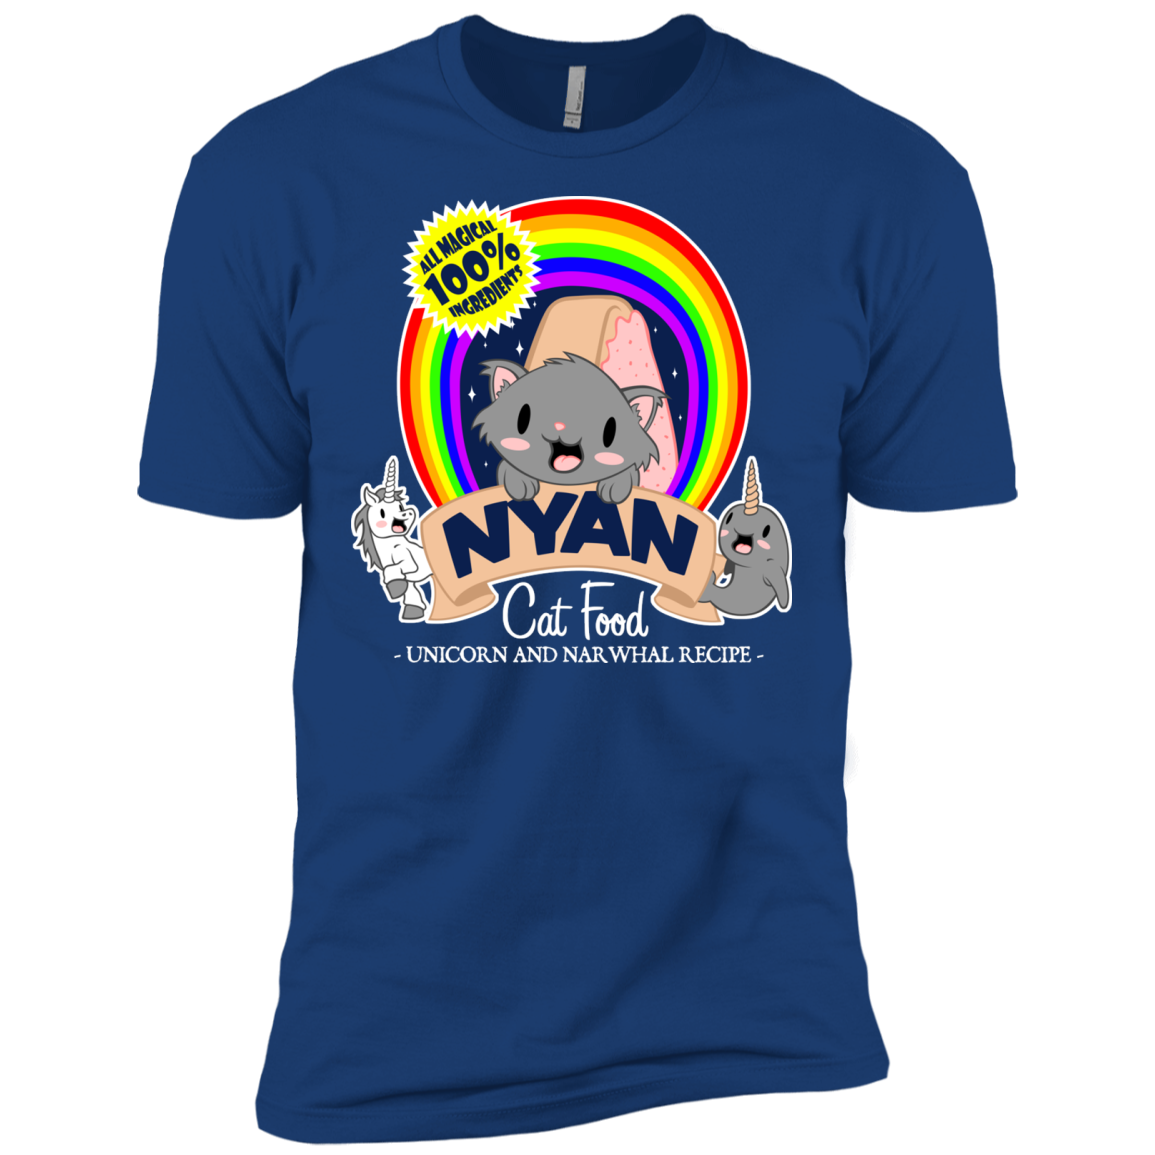 All Magical Nyan Cat Food T- Shirt - The Sun Cat